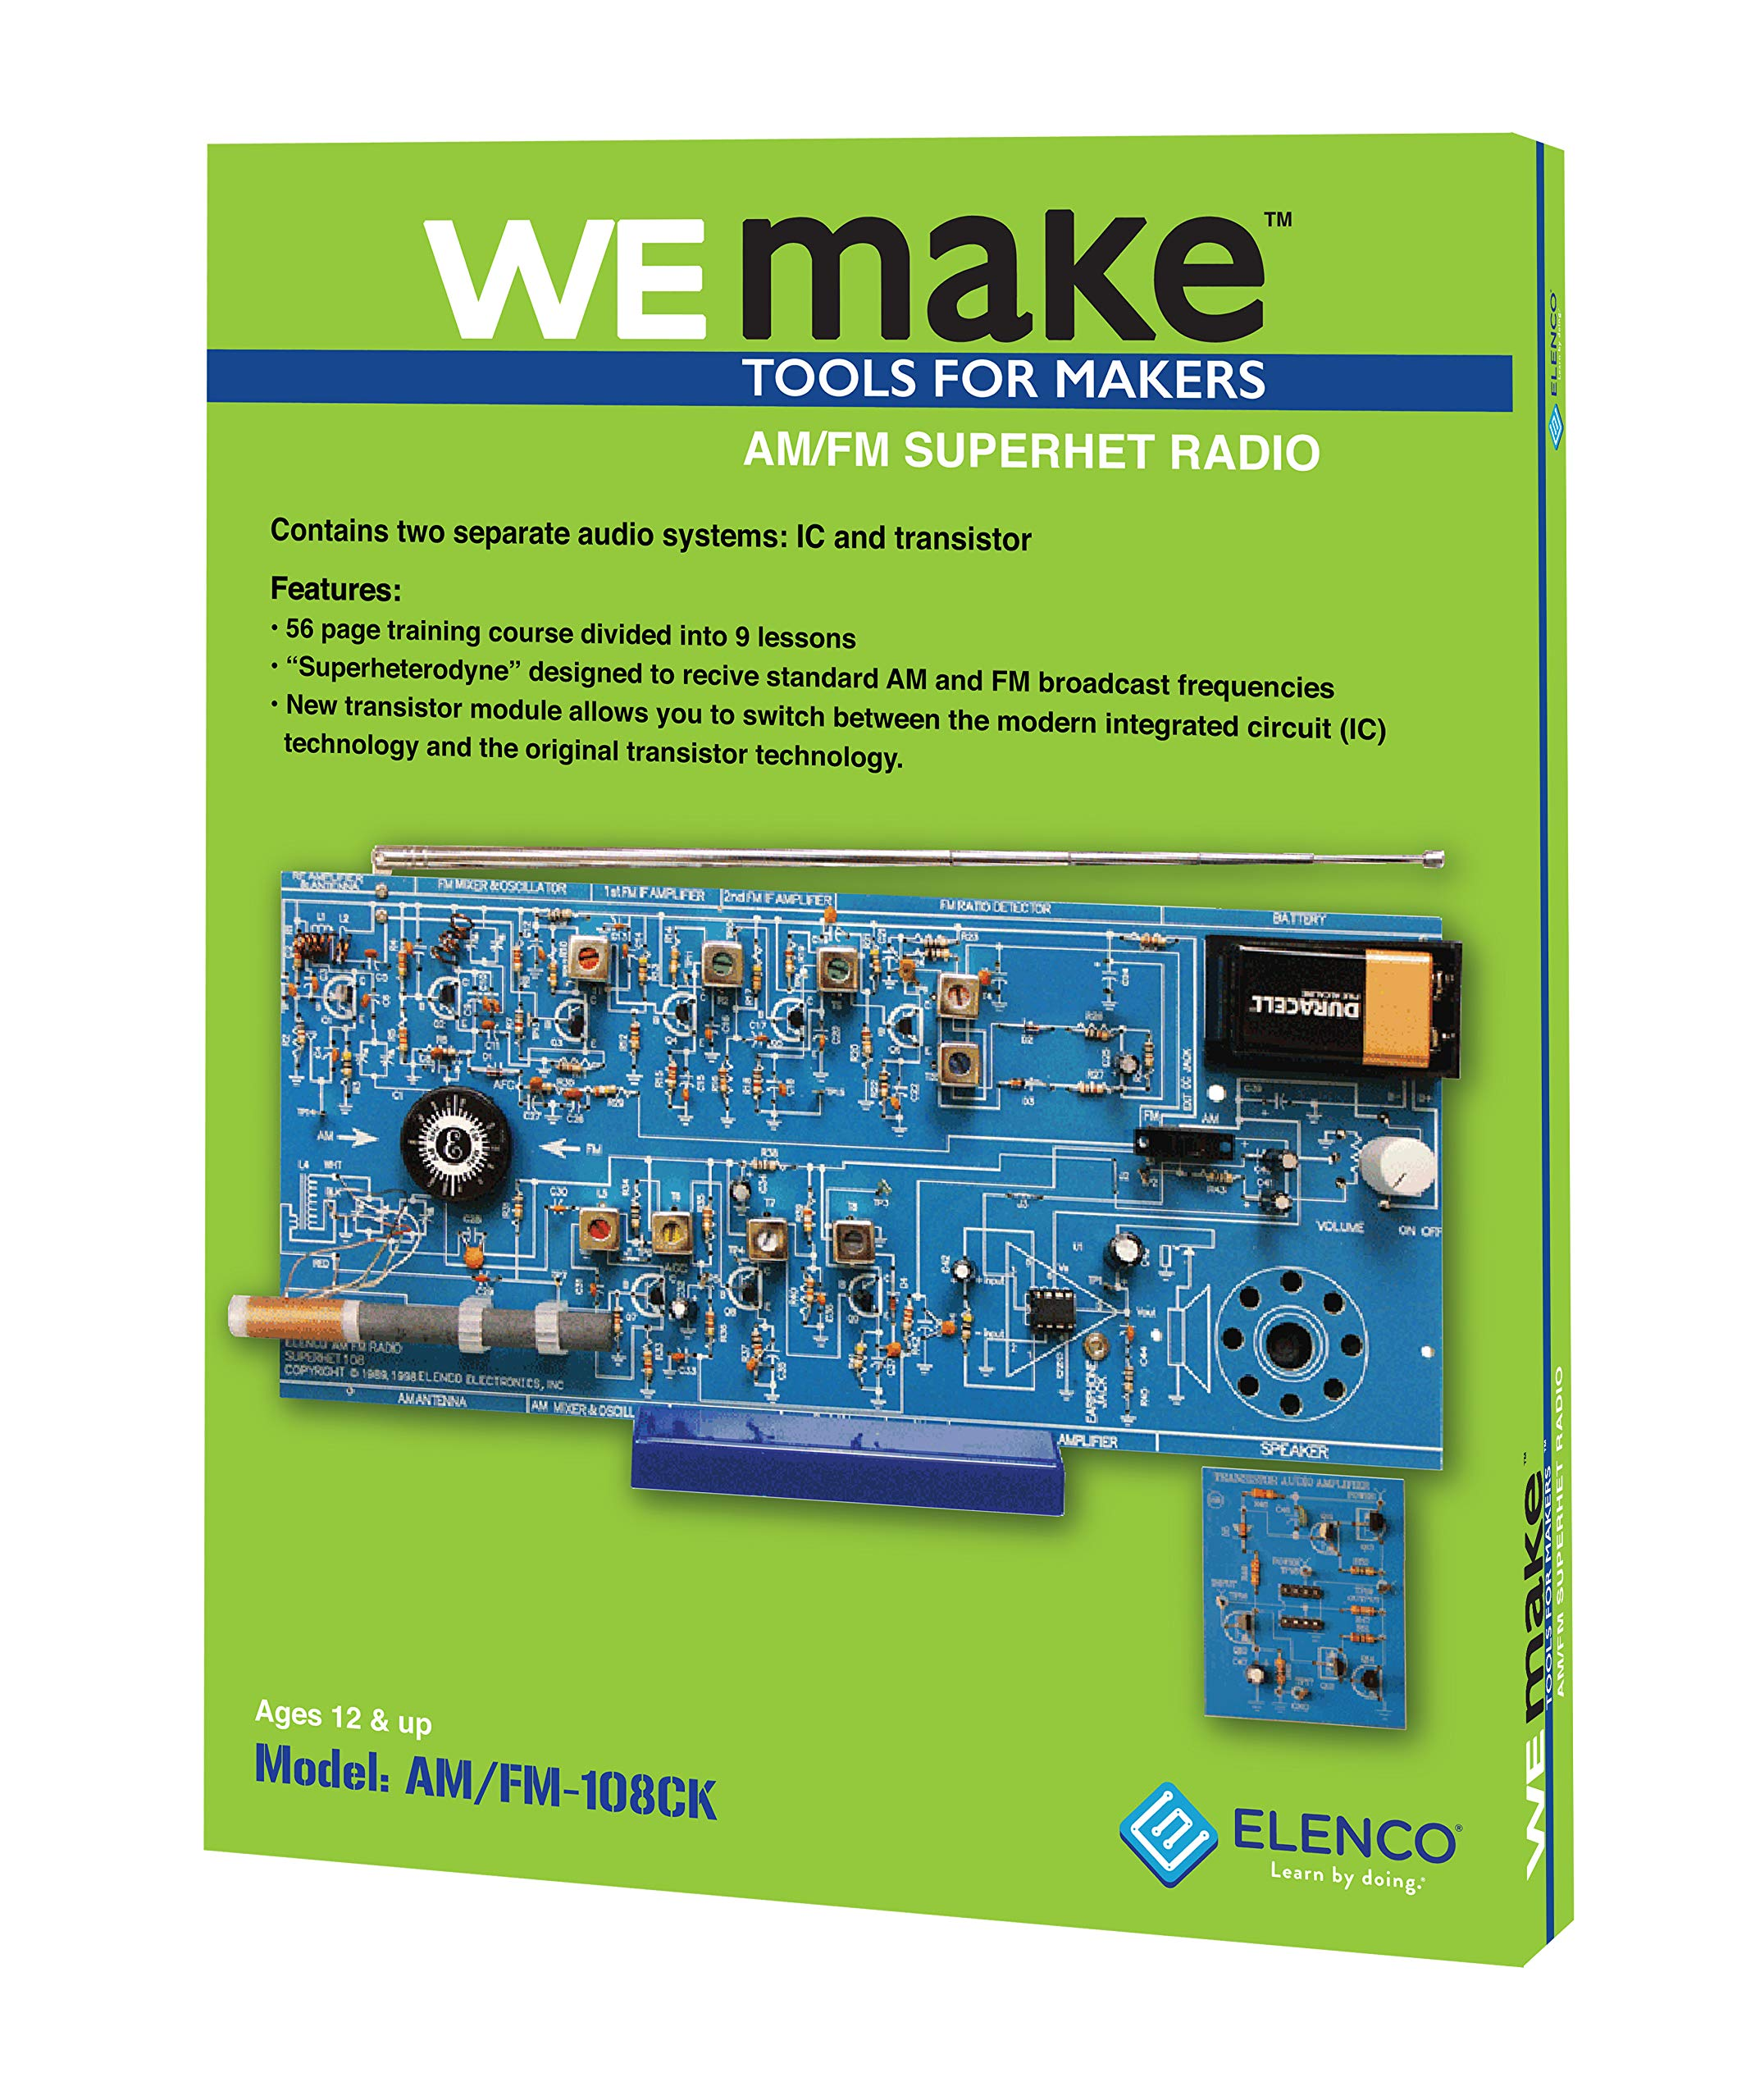 Elenco  AM/FM Radio Kit |Switch Between ICs & Transistors | Lead Free Solder | Great STEM Project | Superheterodyne Designed to AM and FM Broadcasts | SOLDERING REQUIRED by Elenco